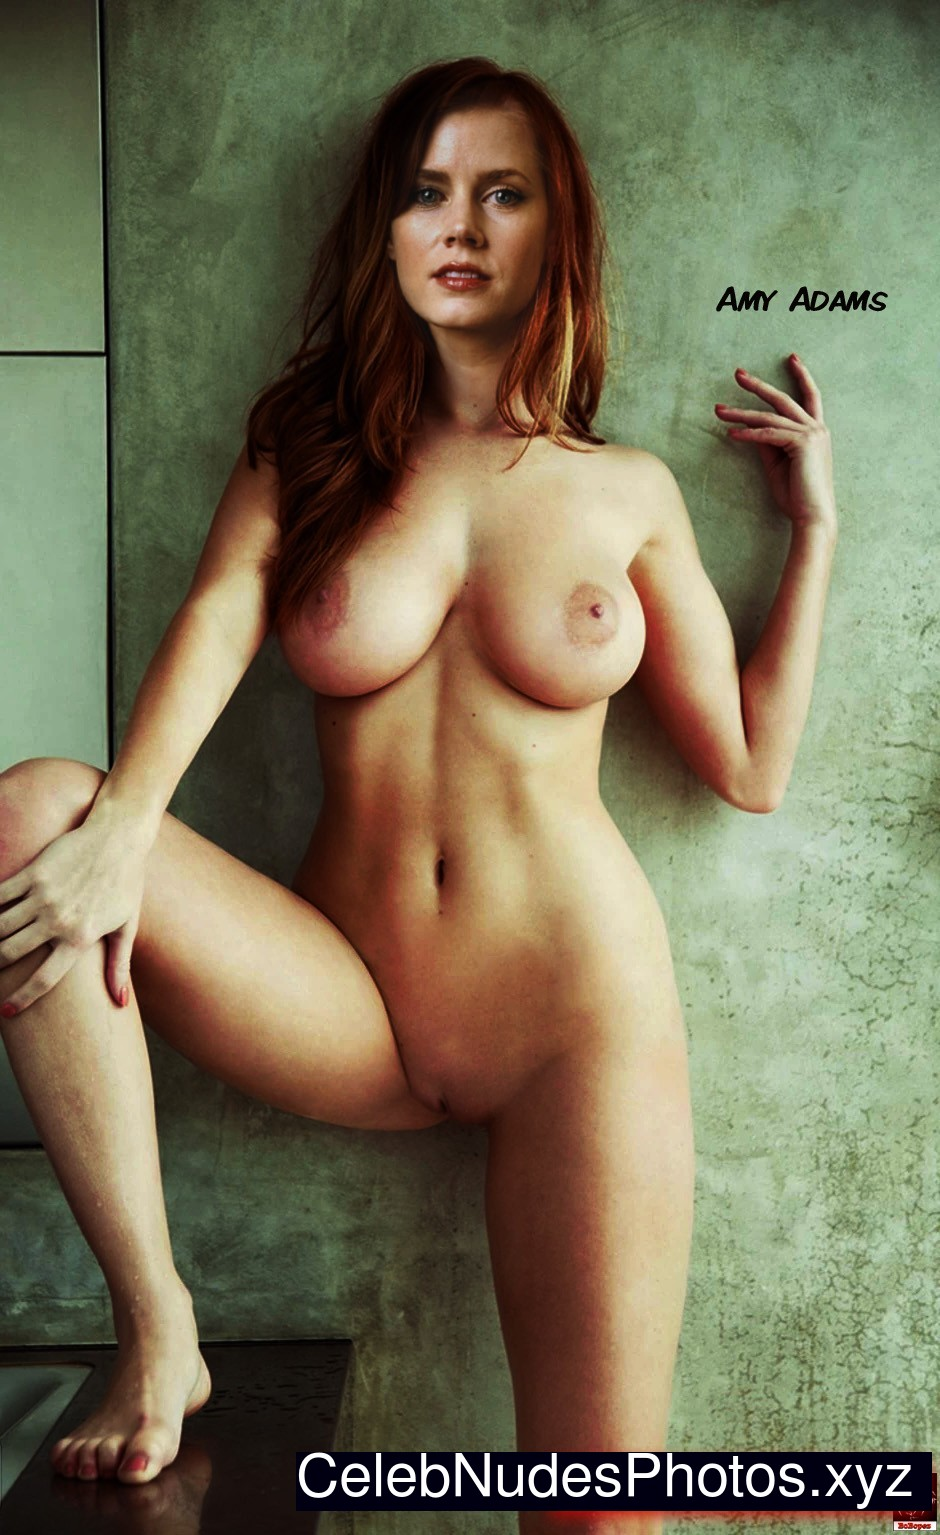 Amy Adams naked celebritys